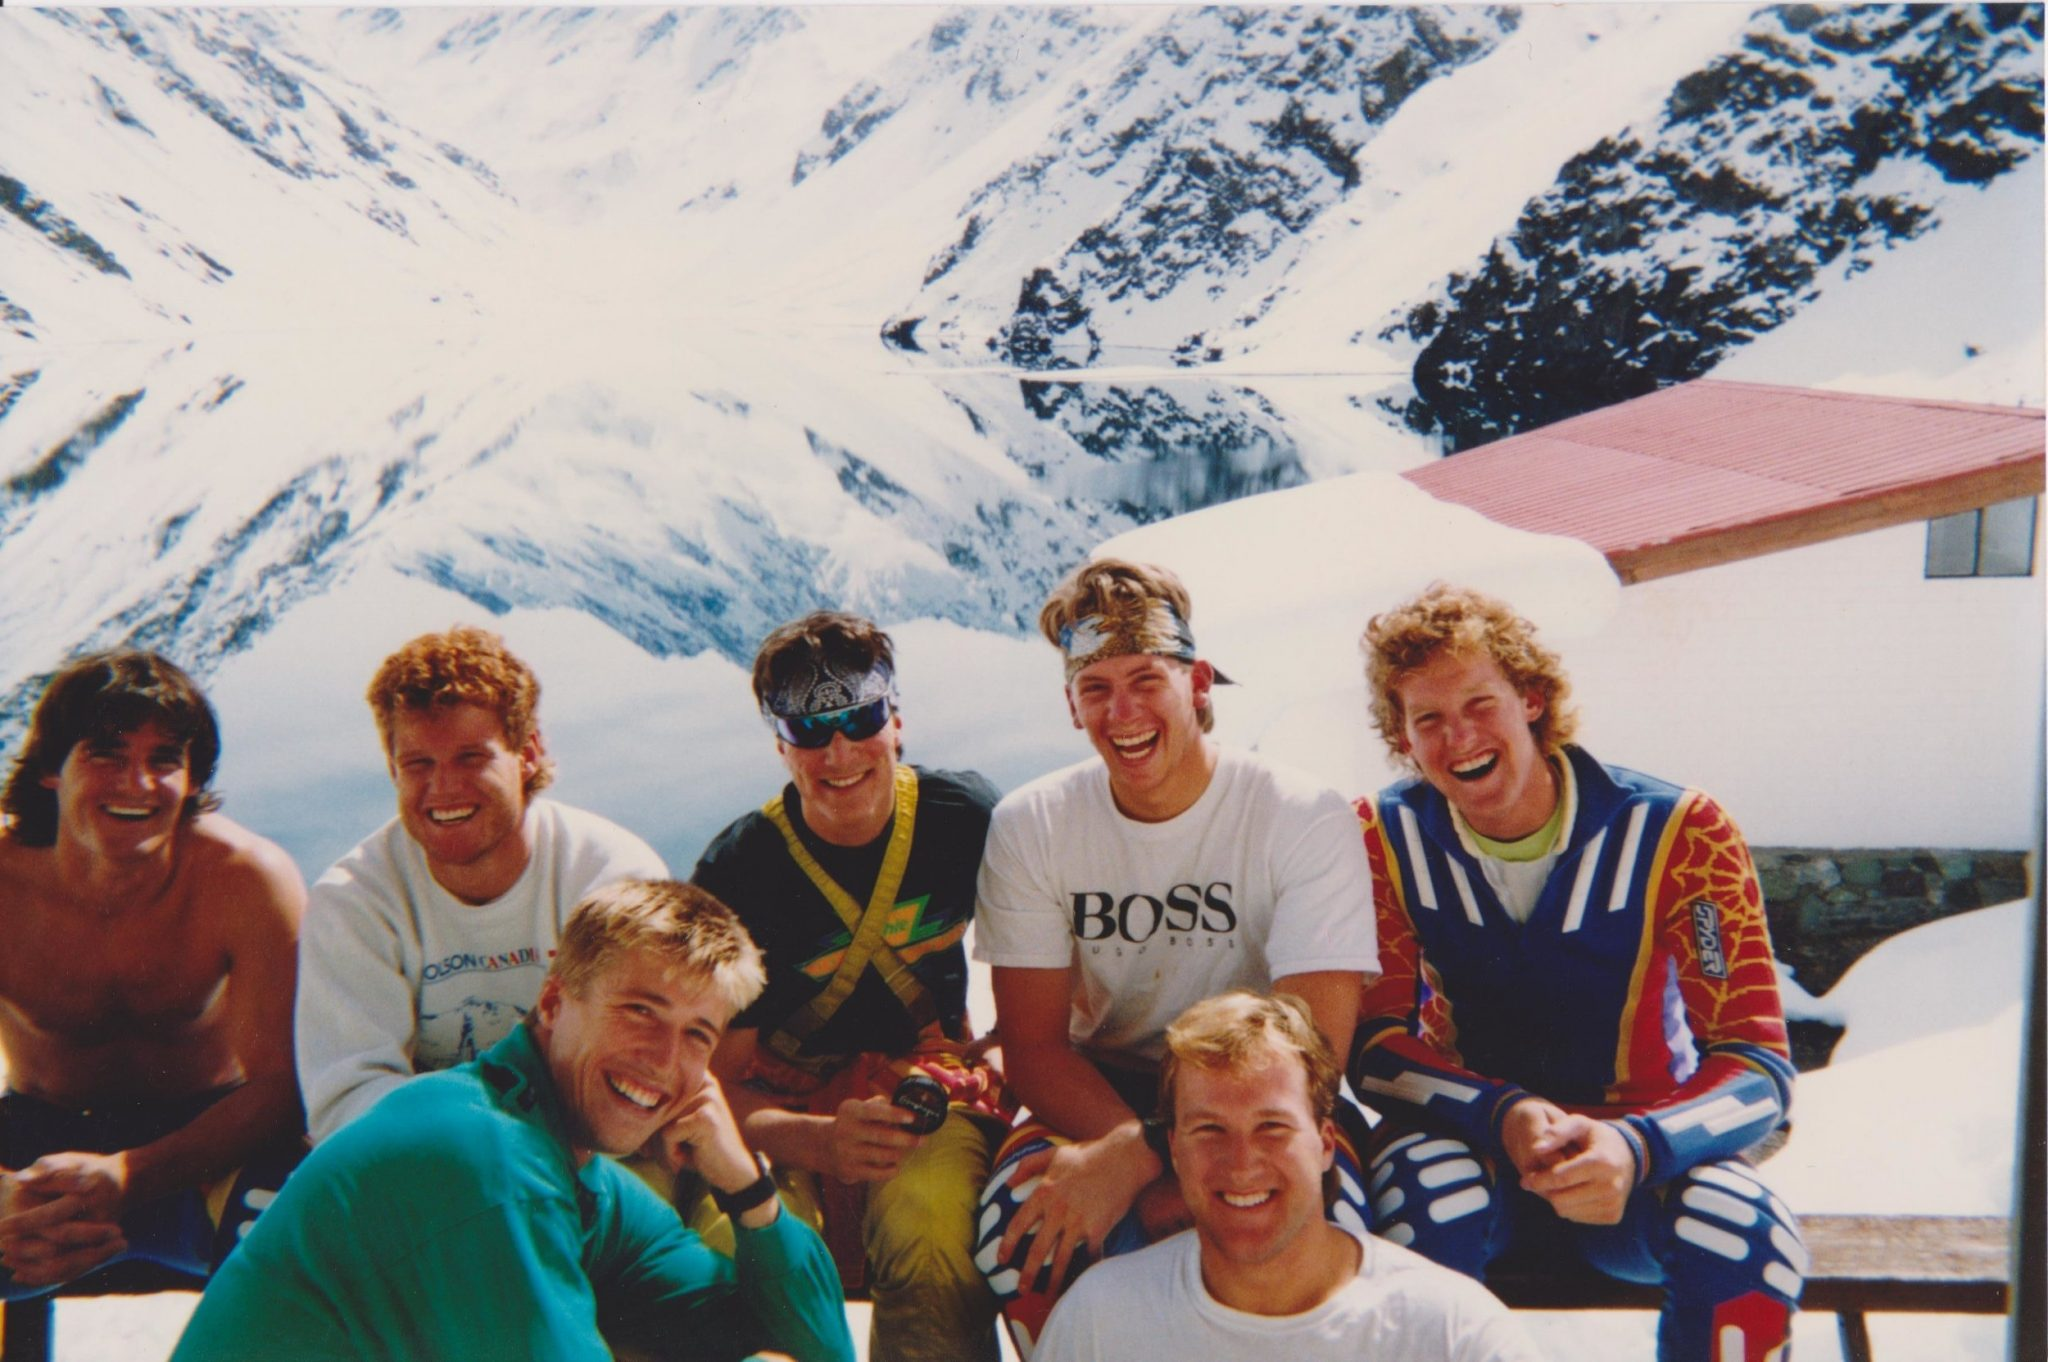 image-7_rob-bosinger-with-canadian-ski-team